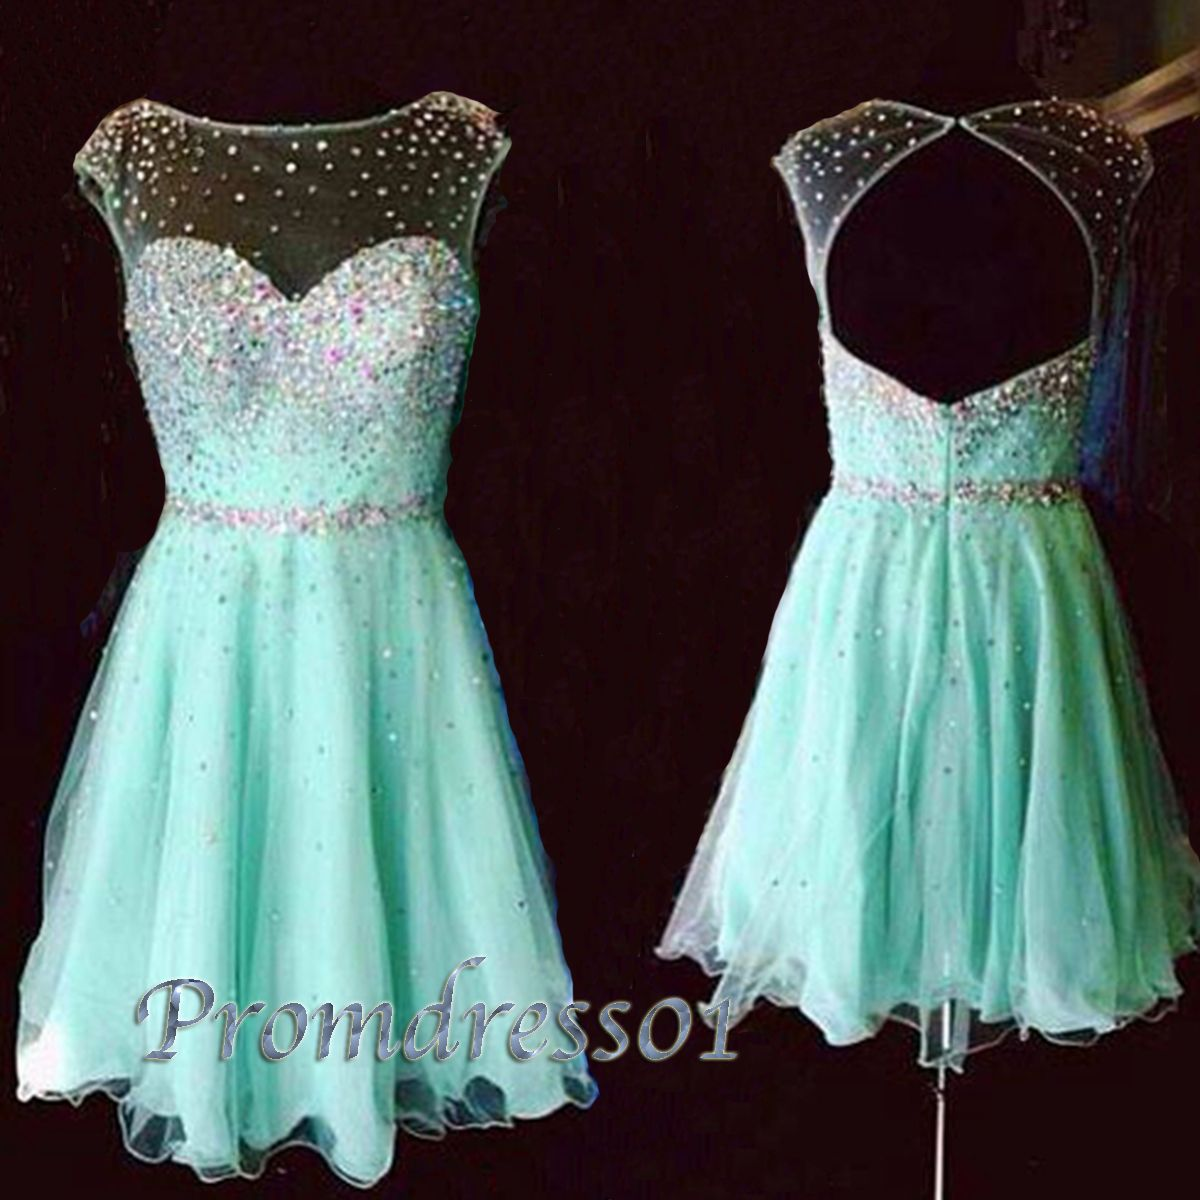 elegant long dresses for teen - Google Search | cute ...